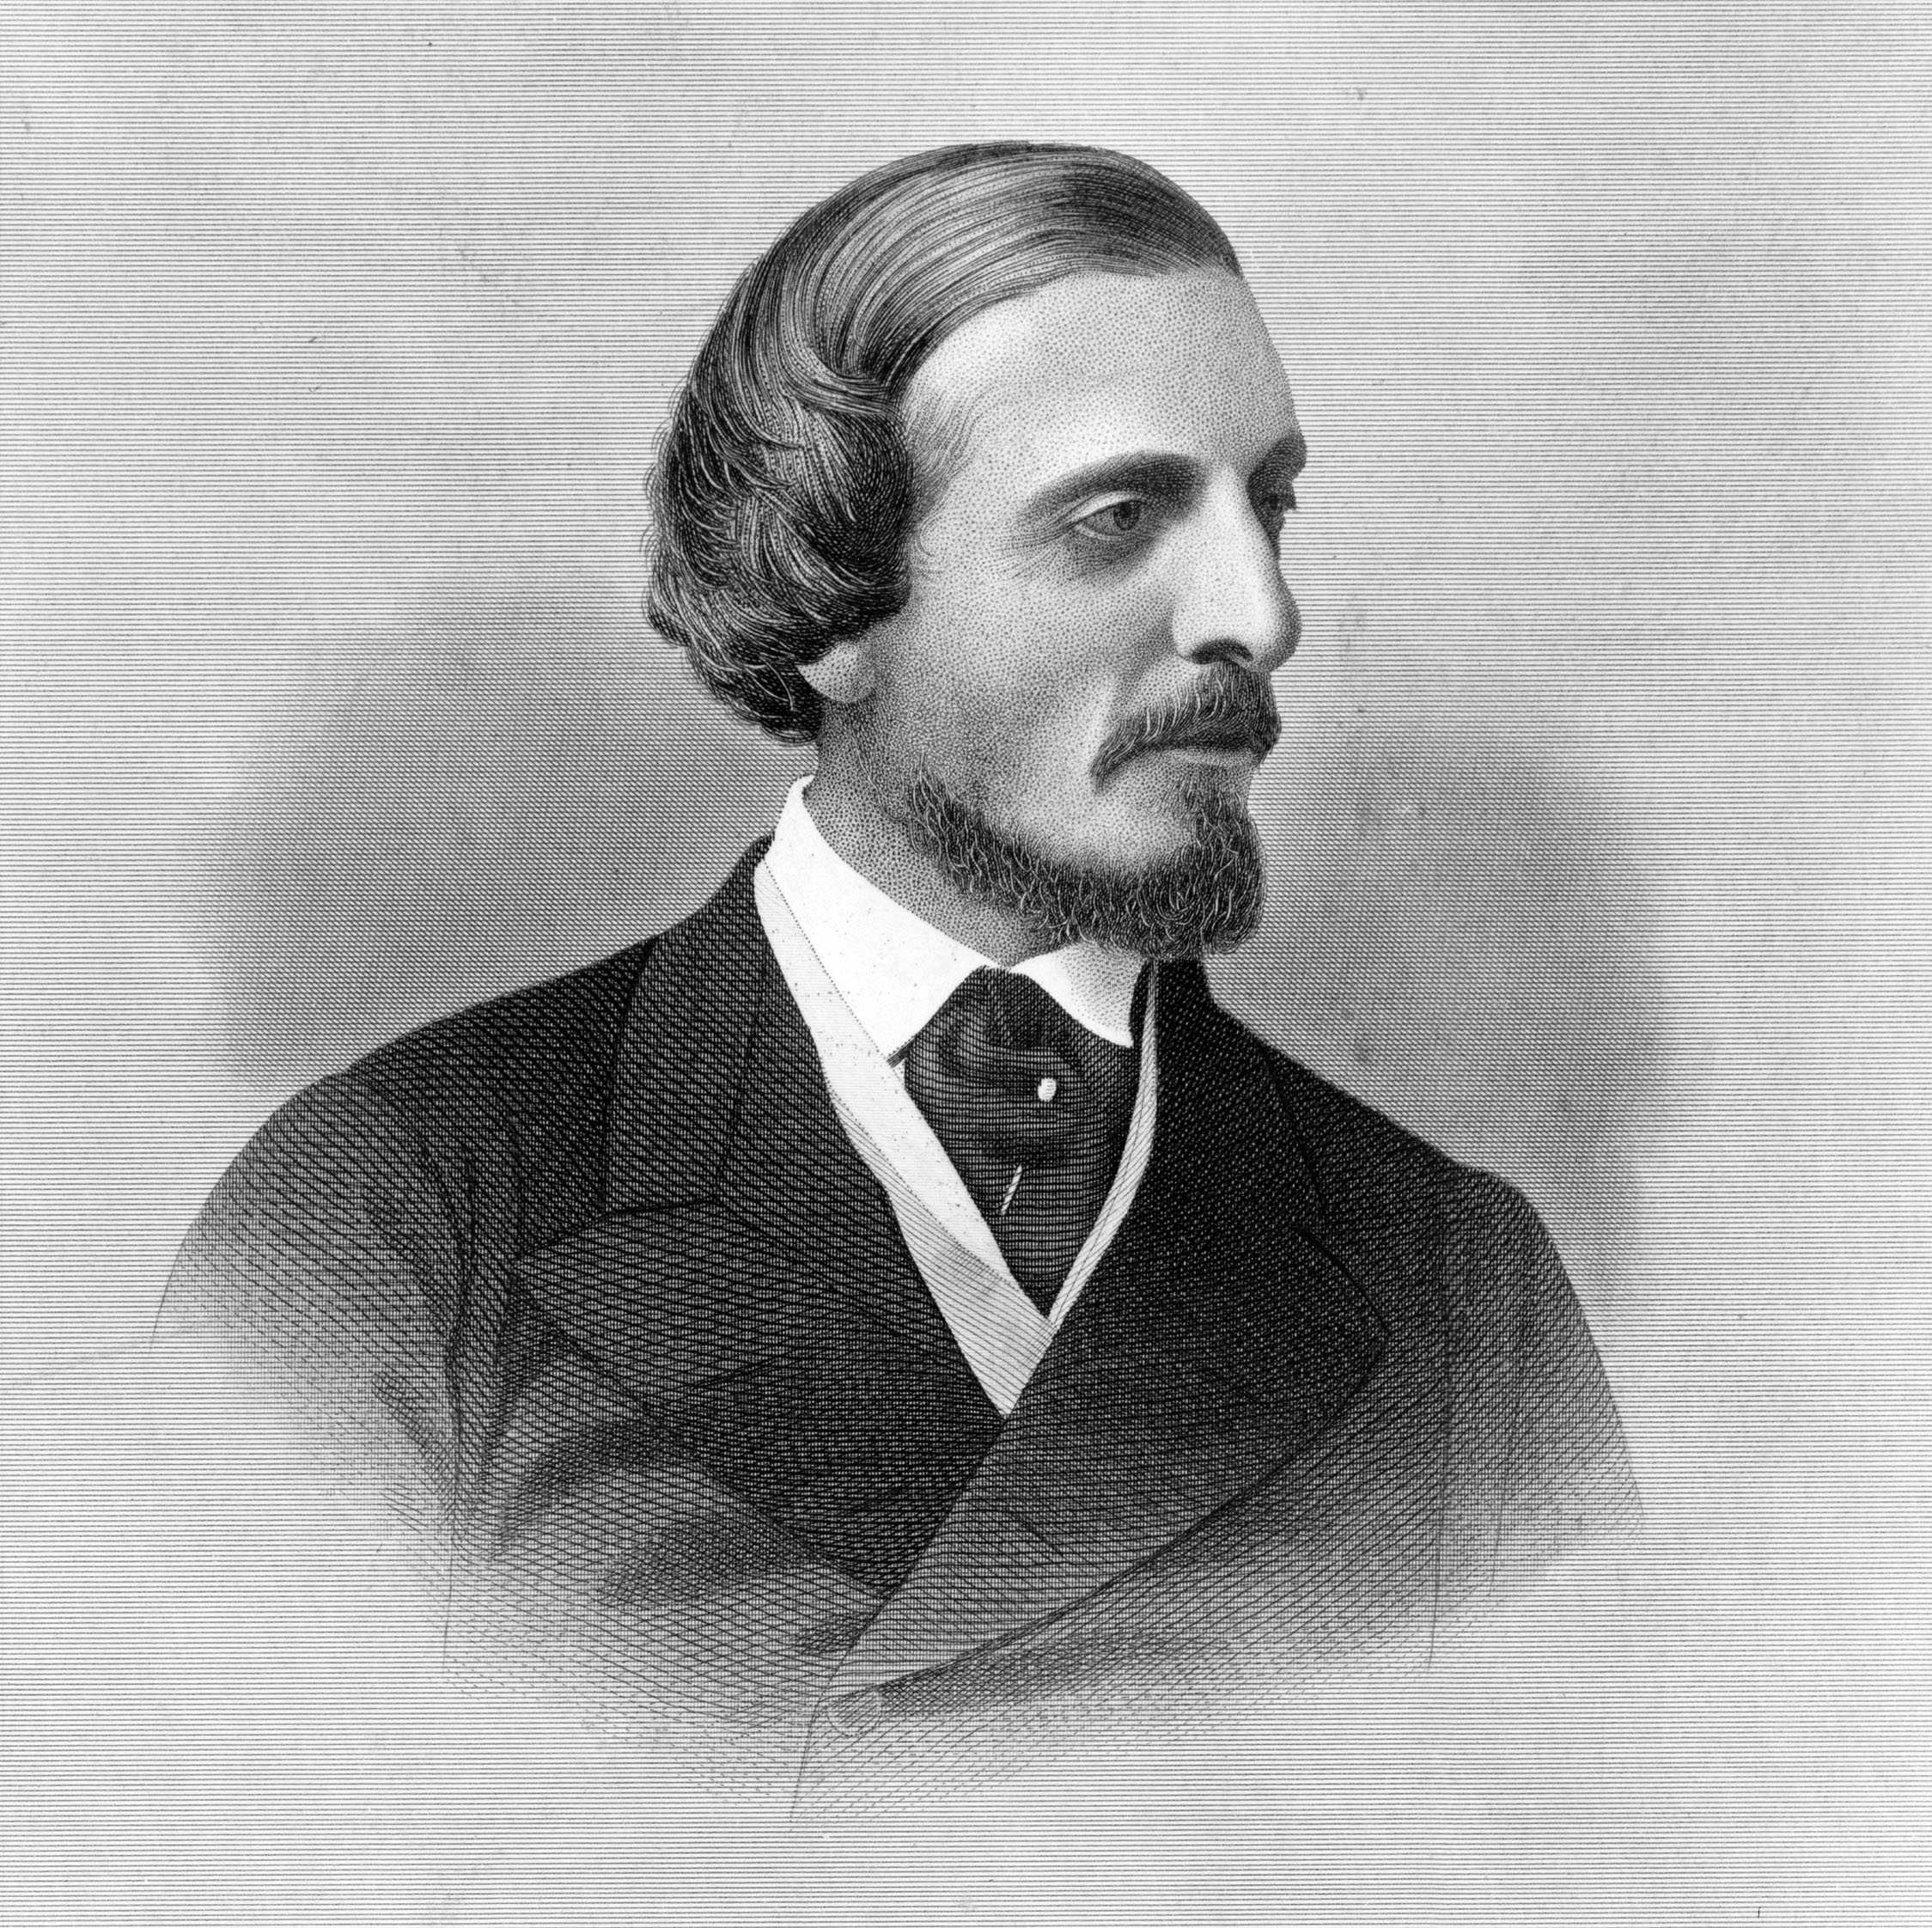 Lord Dufferin